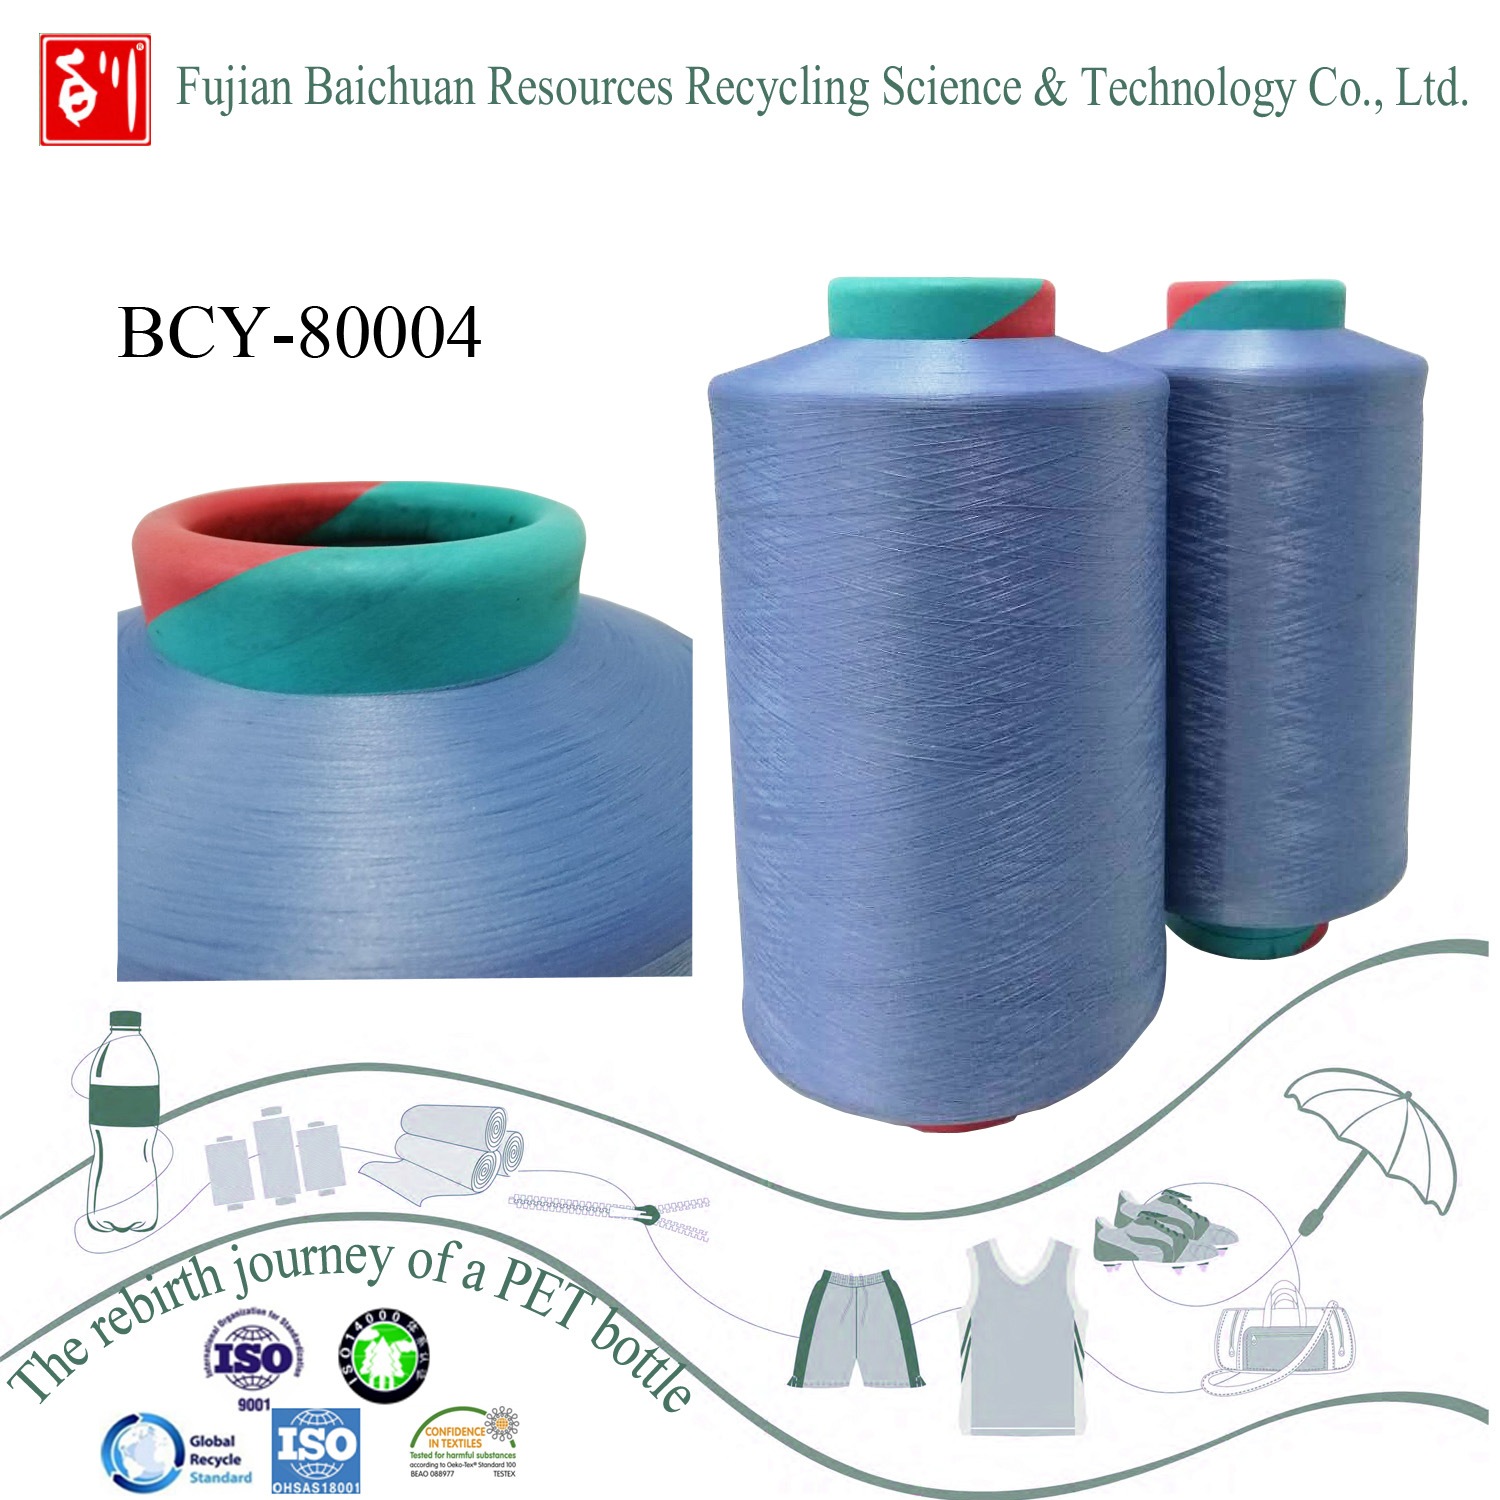 Recycled Polyester Yarn - Fujian Baichuan Resources Recycling